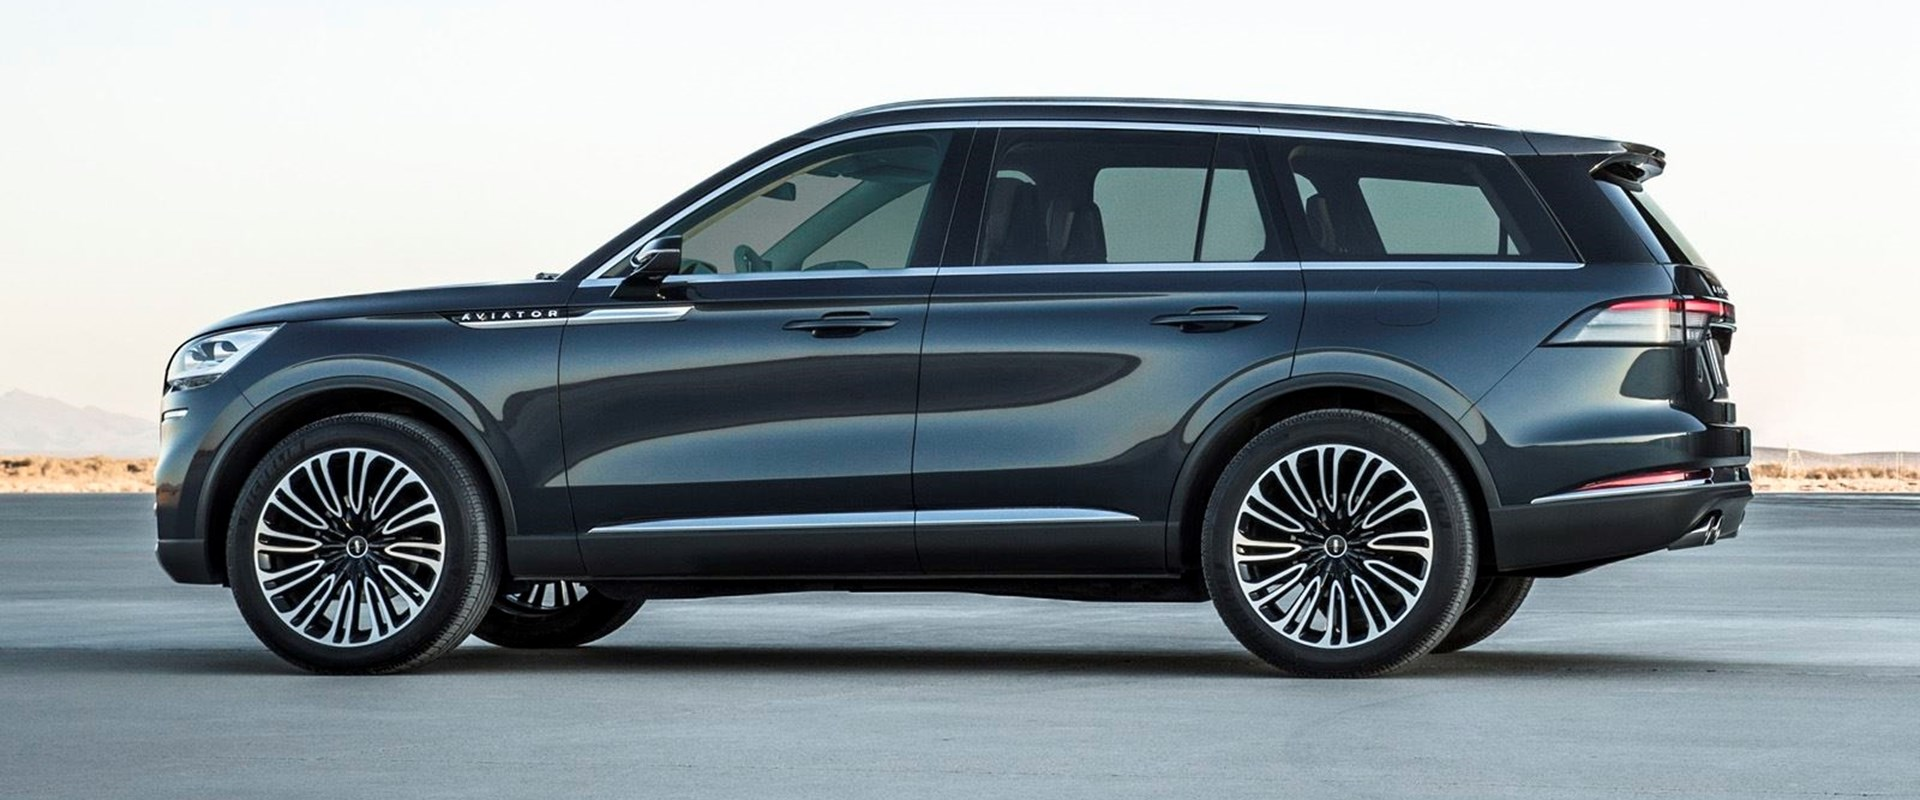 Lincoln Reimagines 2020 Aviator As Bold Turbocharged